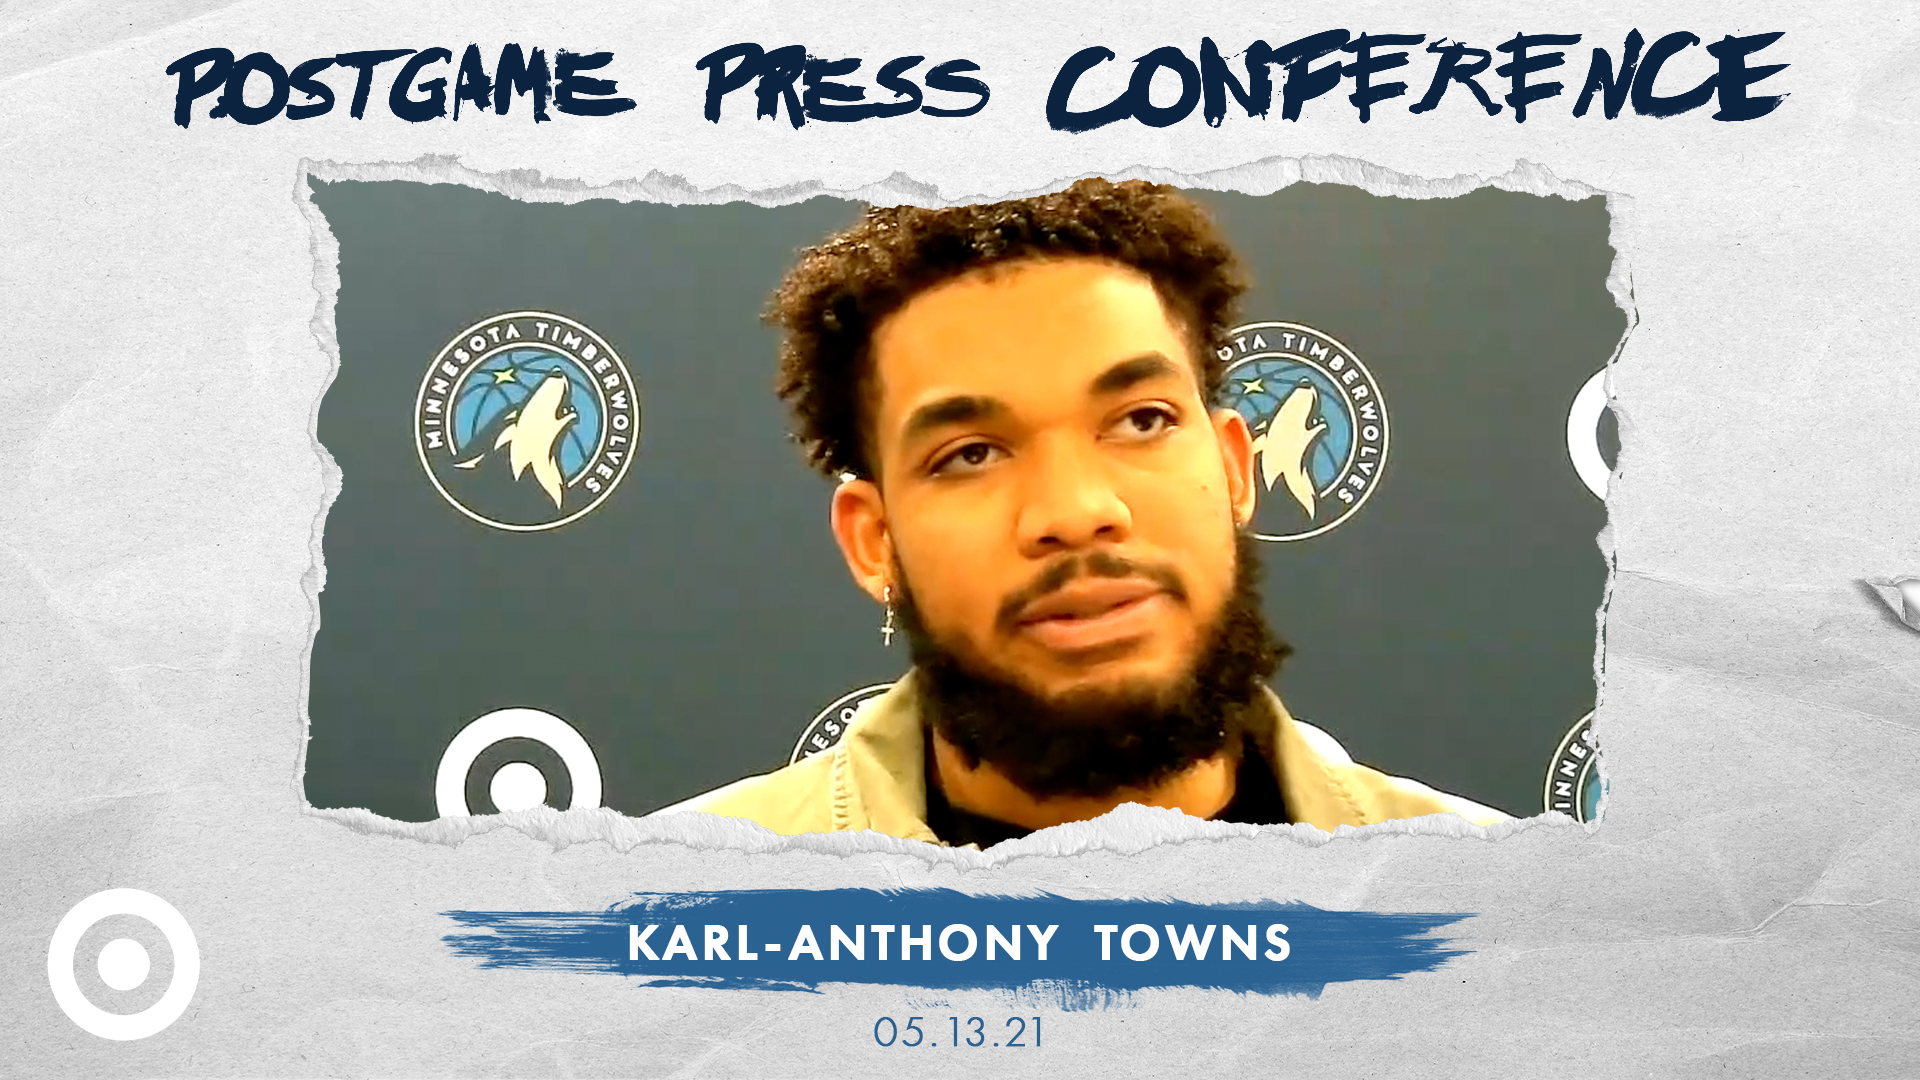 Karl-Anthony Towns Postgame Press Conference - May 13, 2021